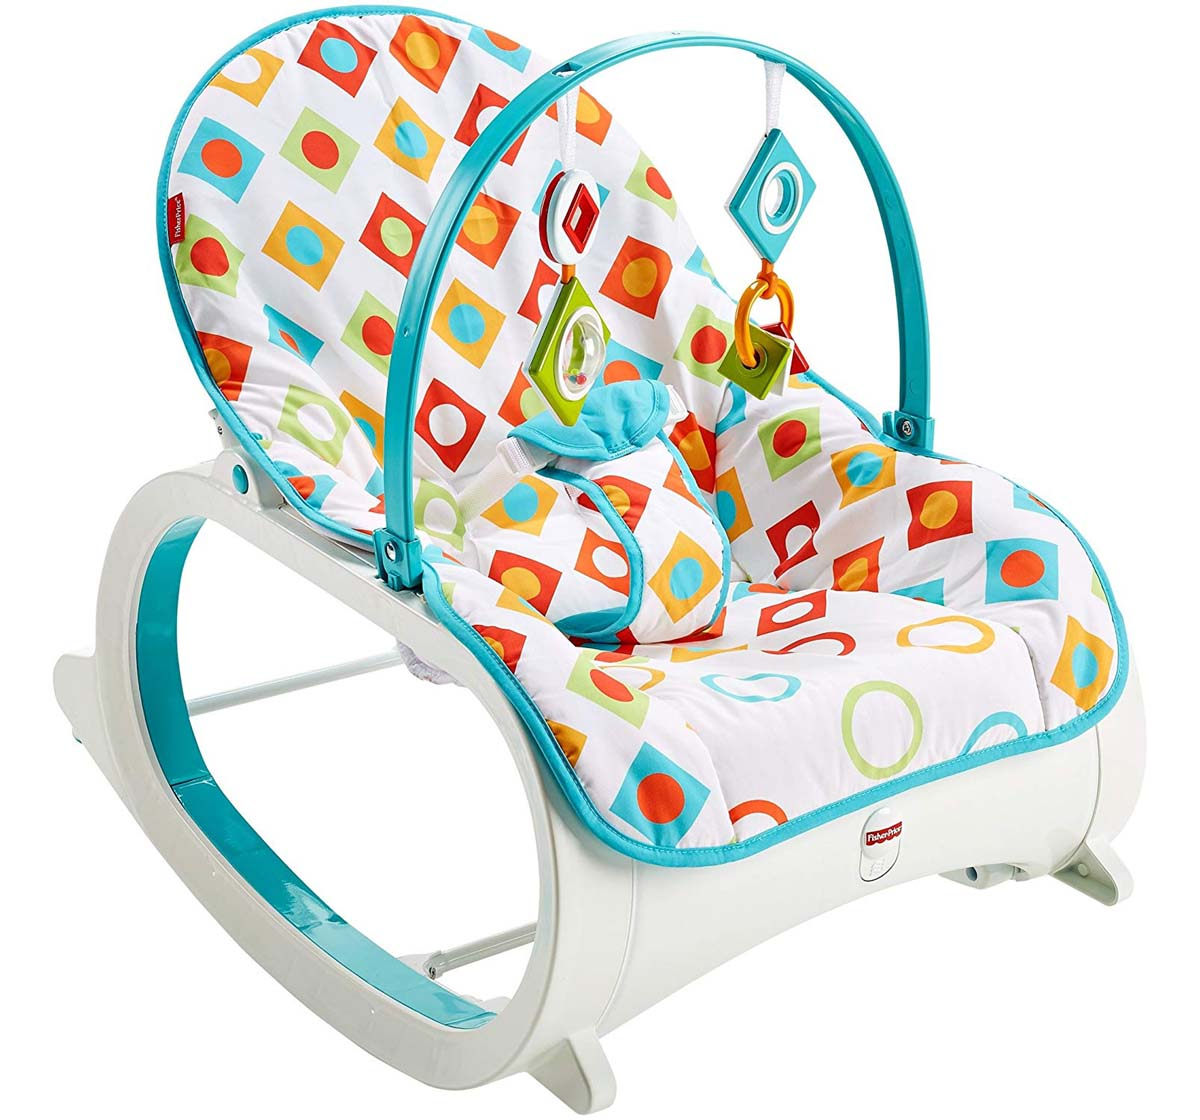 Fisher-Price | Fisher Price Infant To Toddler Rocker Geo Diamonds, Multi Color Baby Gear for Kids age 3Y+